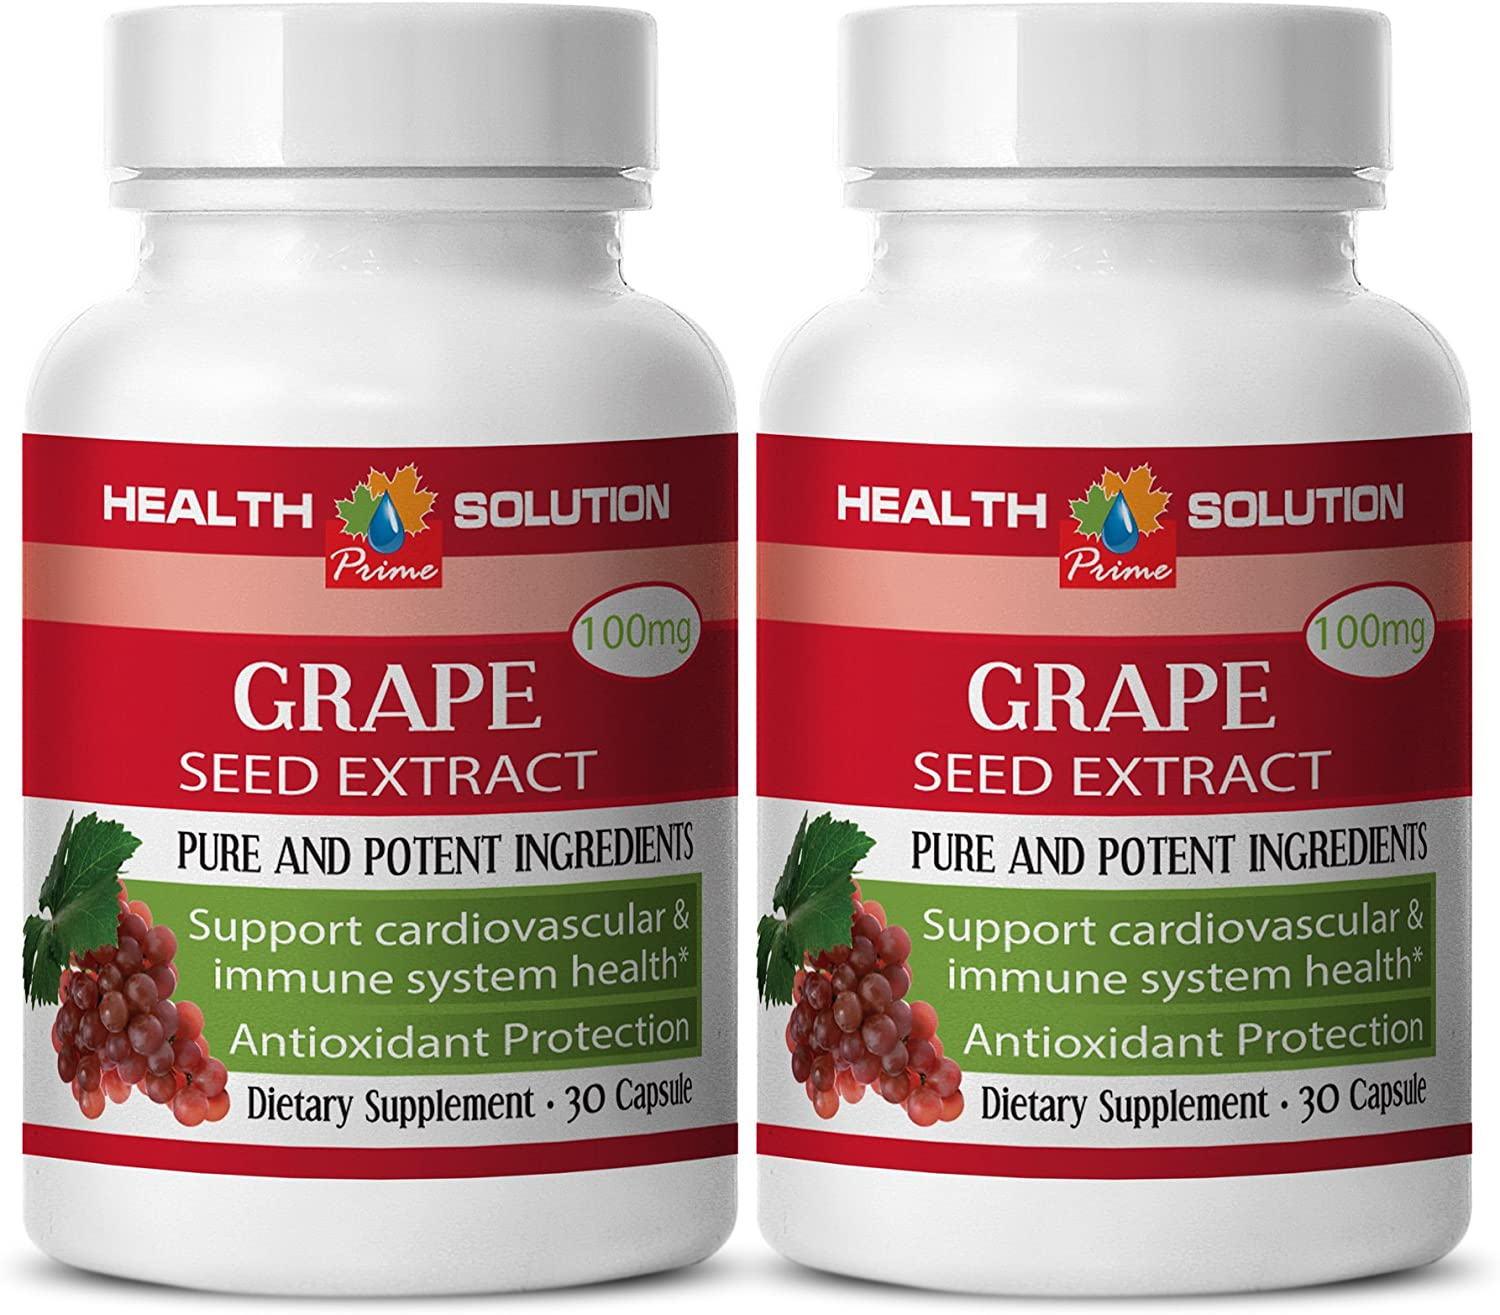 Immune Clearance SALE Limited time Support Supplement Direct store - Extr Extract Seed Grape